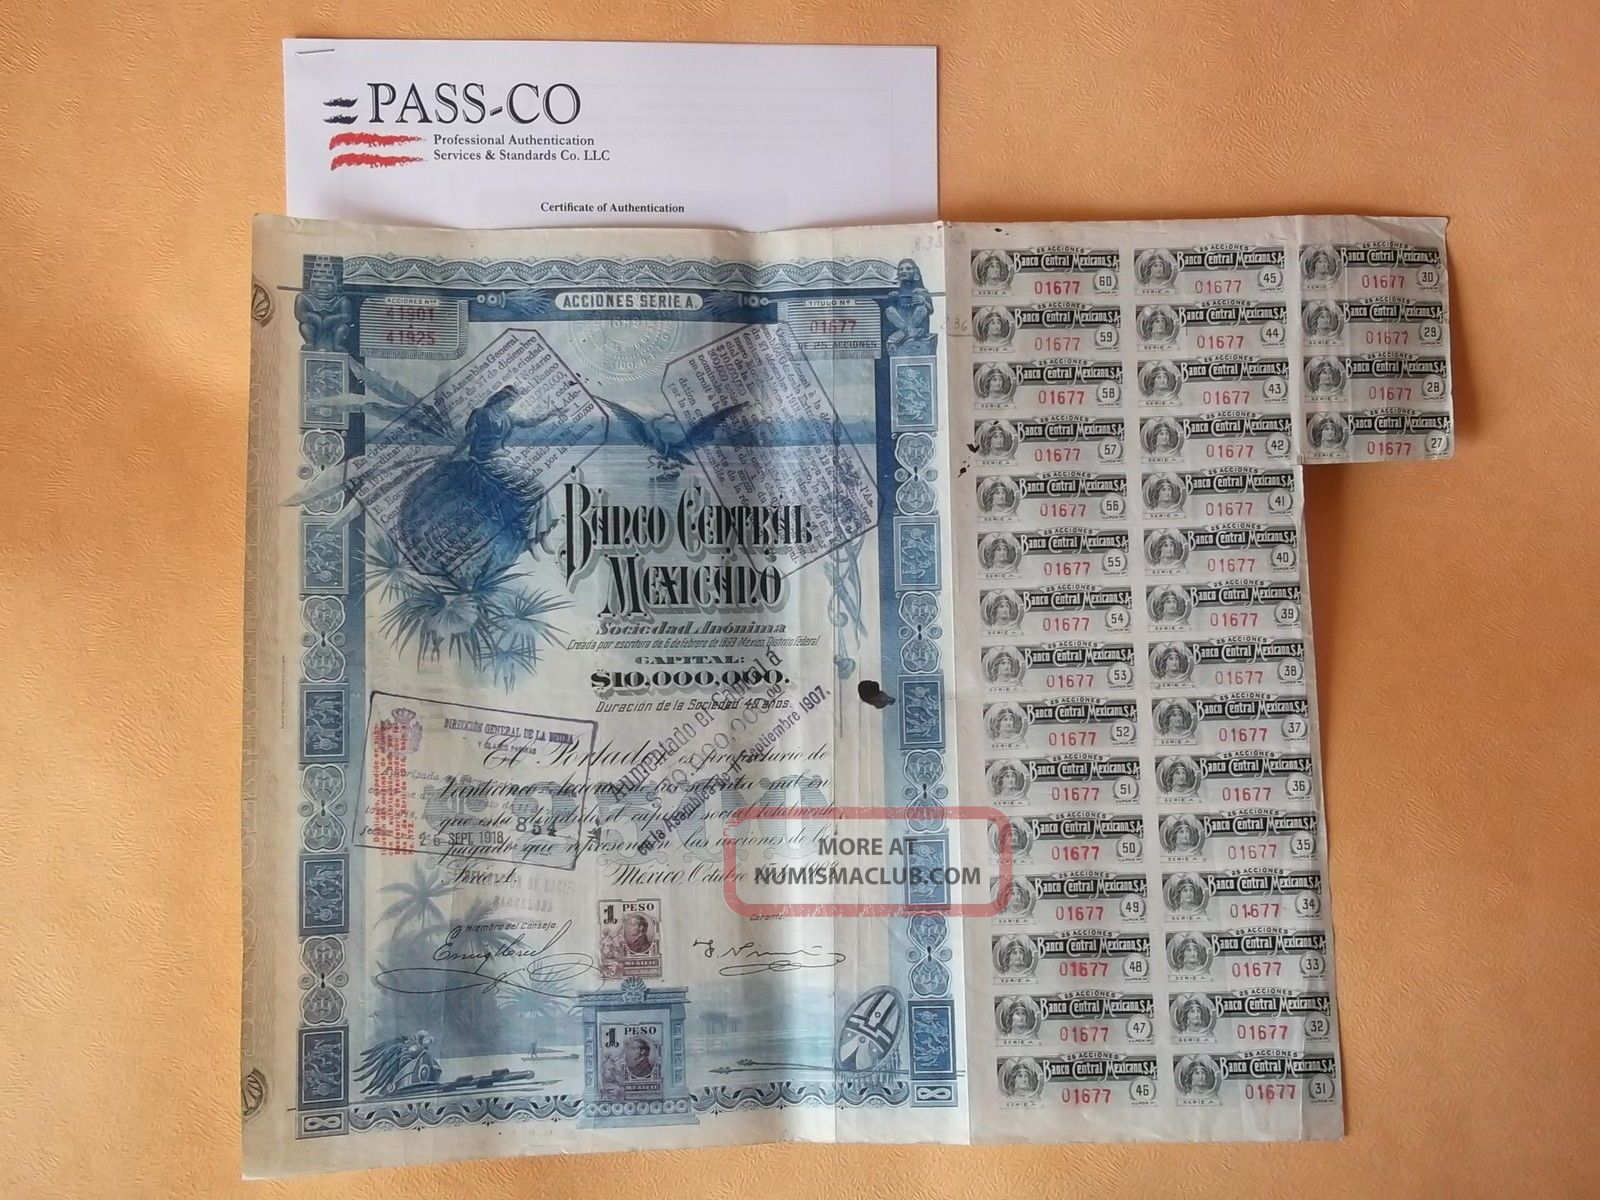 Banco Central $2500 1903 With Pass - Co Blueberry Bond World photo